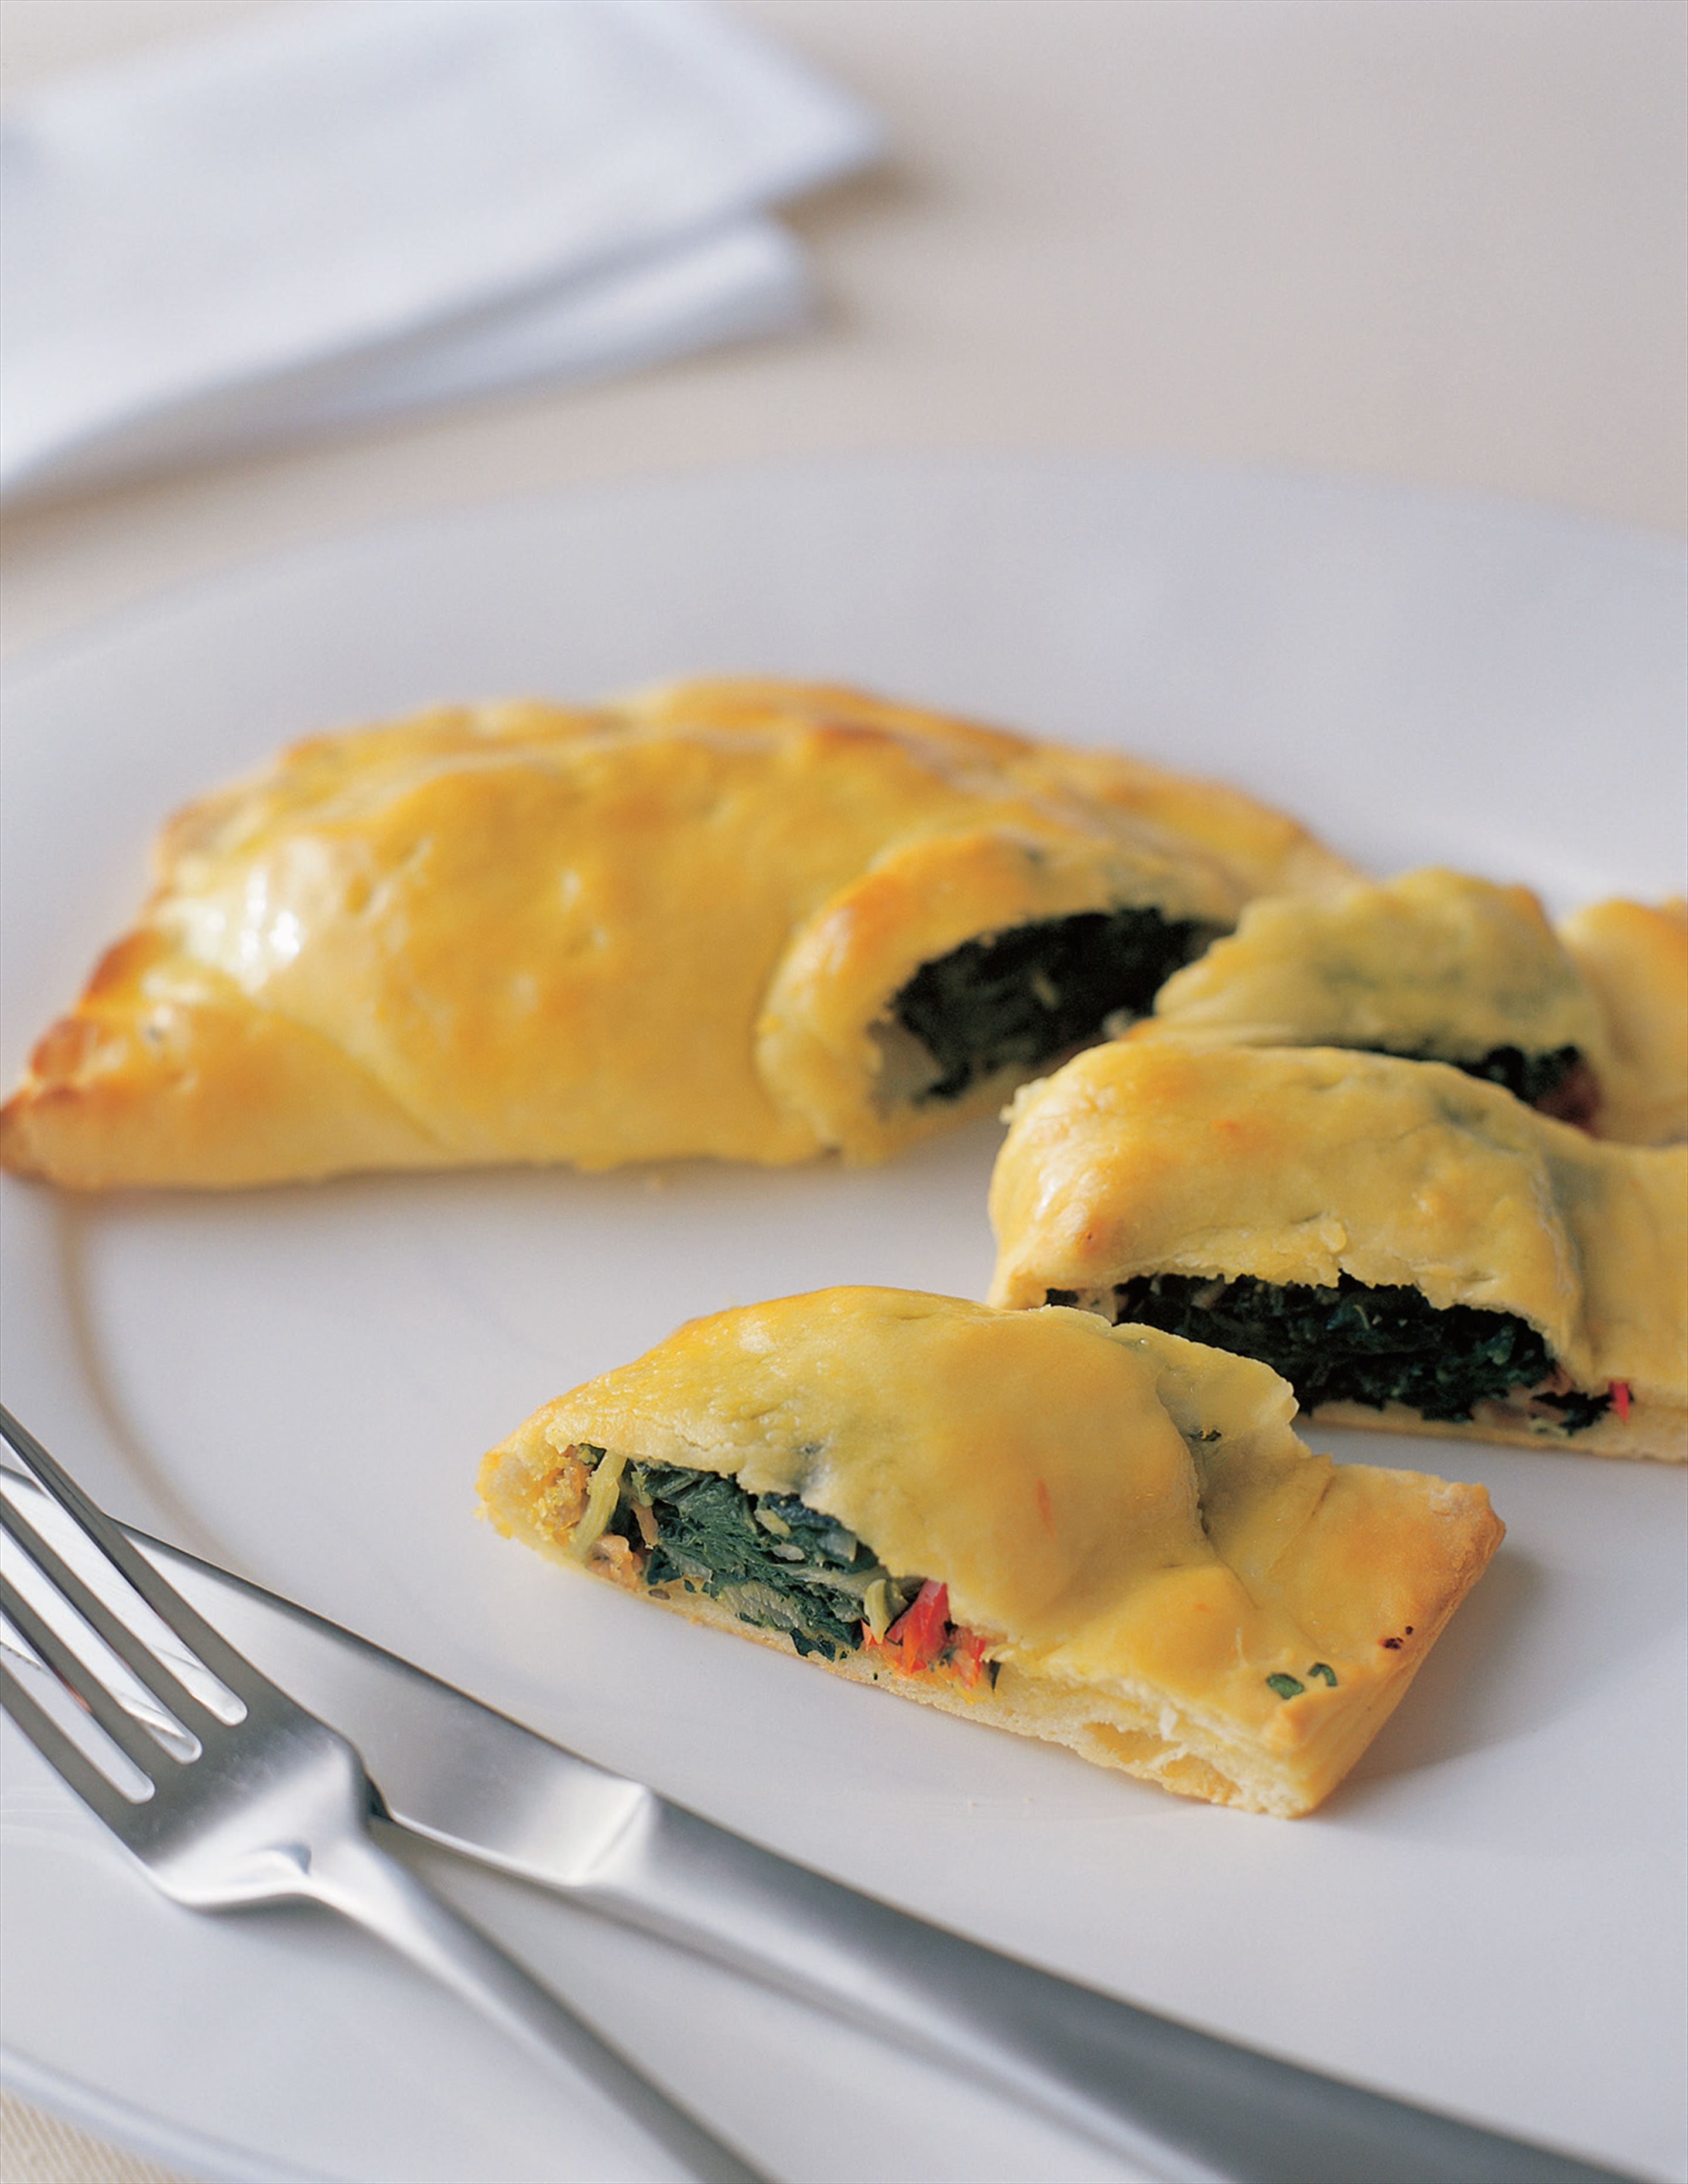 Calzone with silverbeet